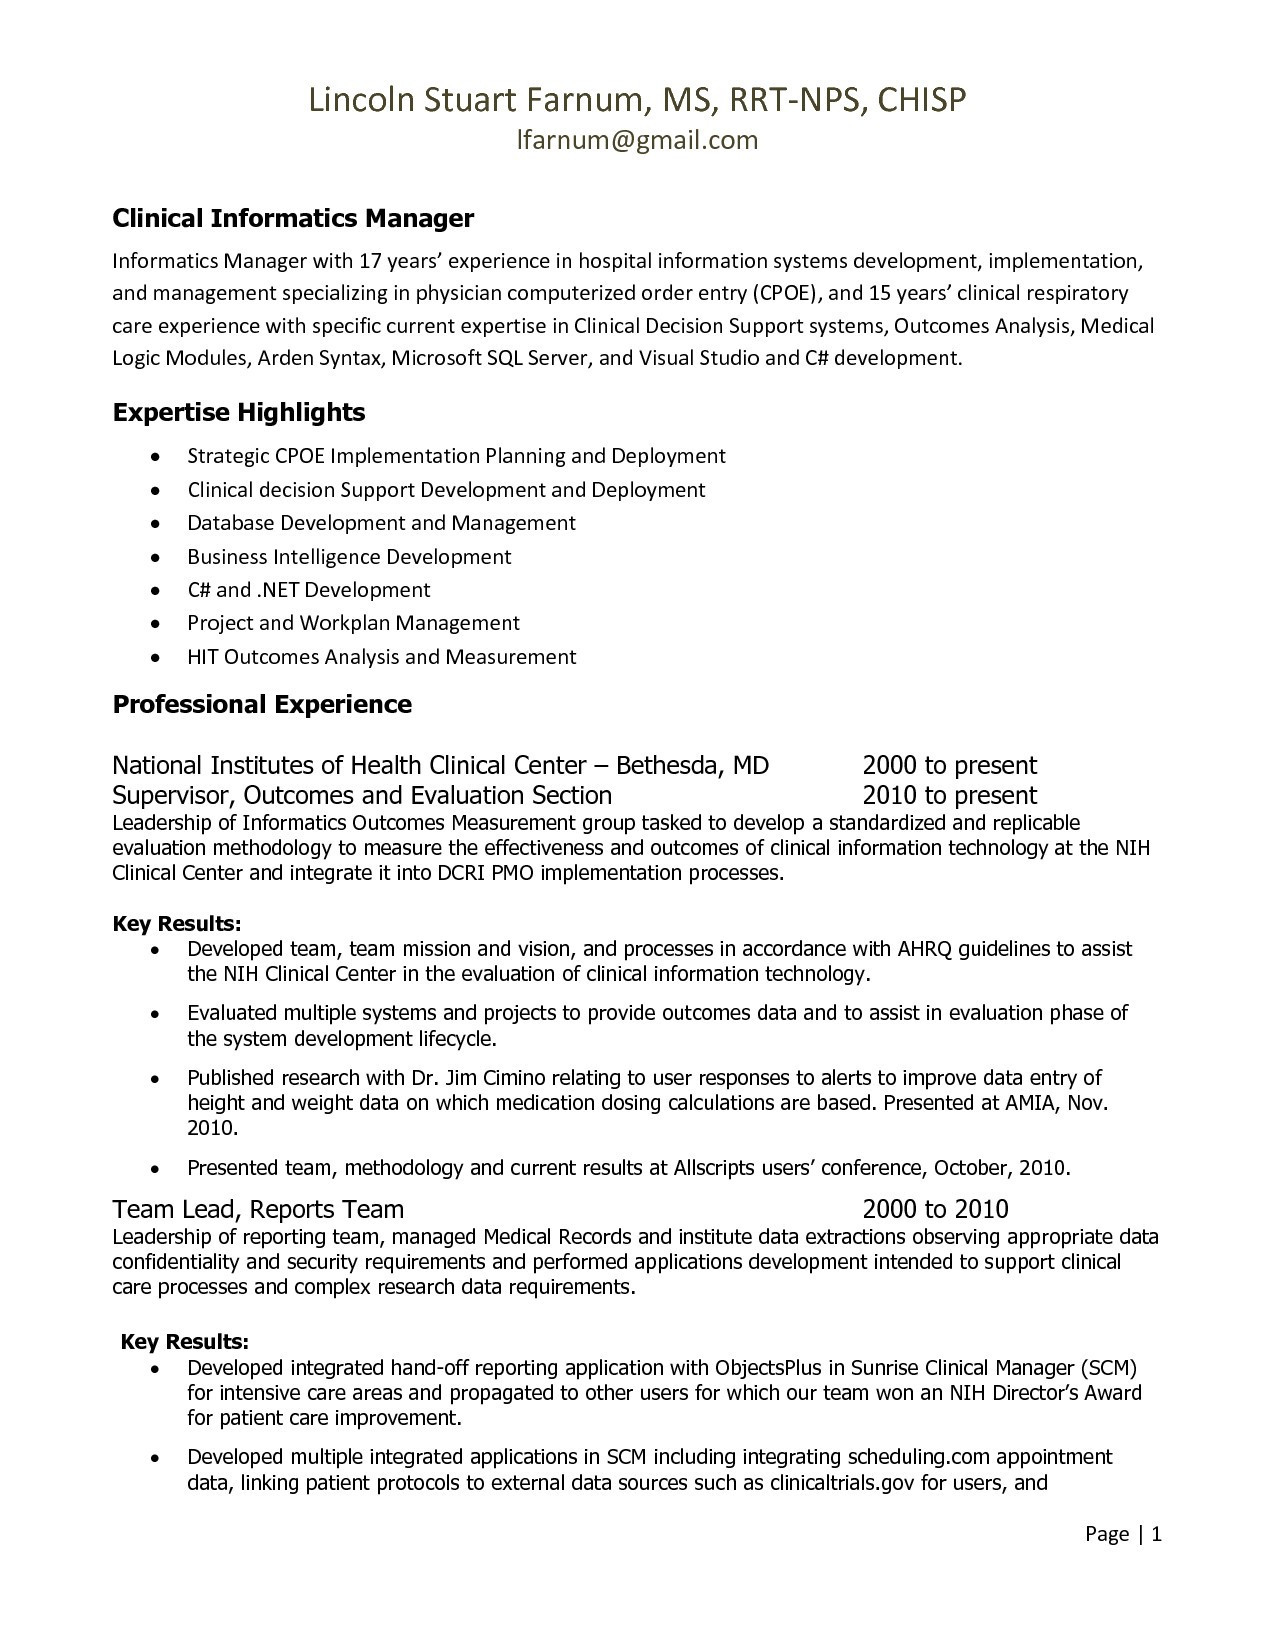 respiratory therapist resume template Collection-Respiratory therapist Resume Objective Examples Reference Sample Resume Objectives for Respiratory therapist New Respiratory 1-e